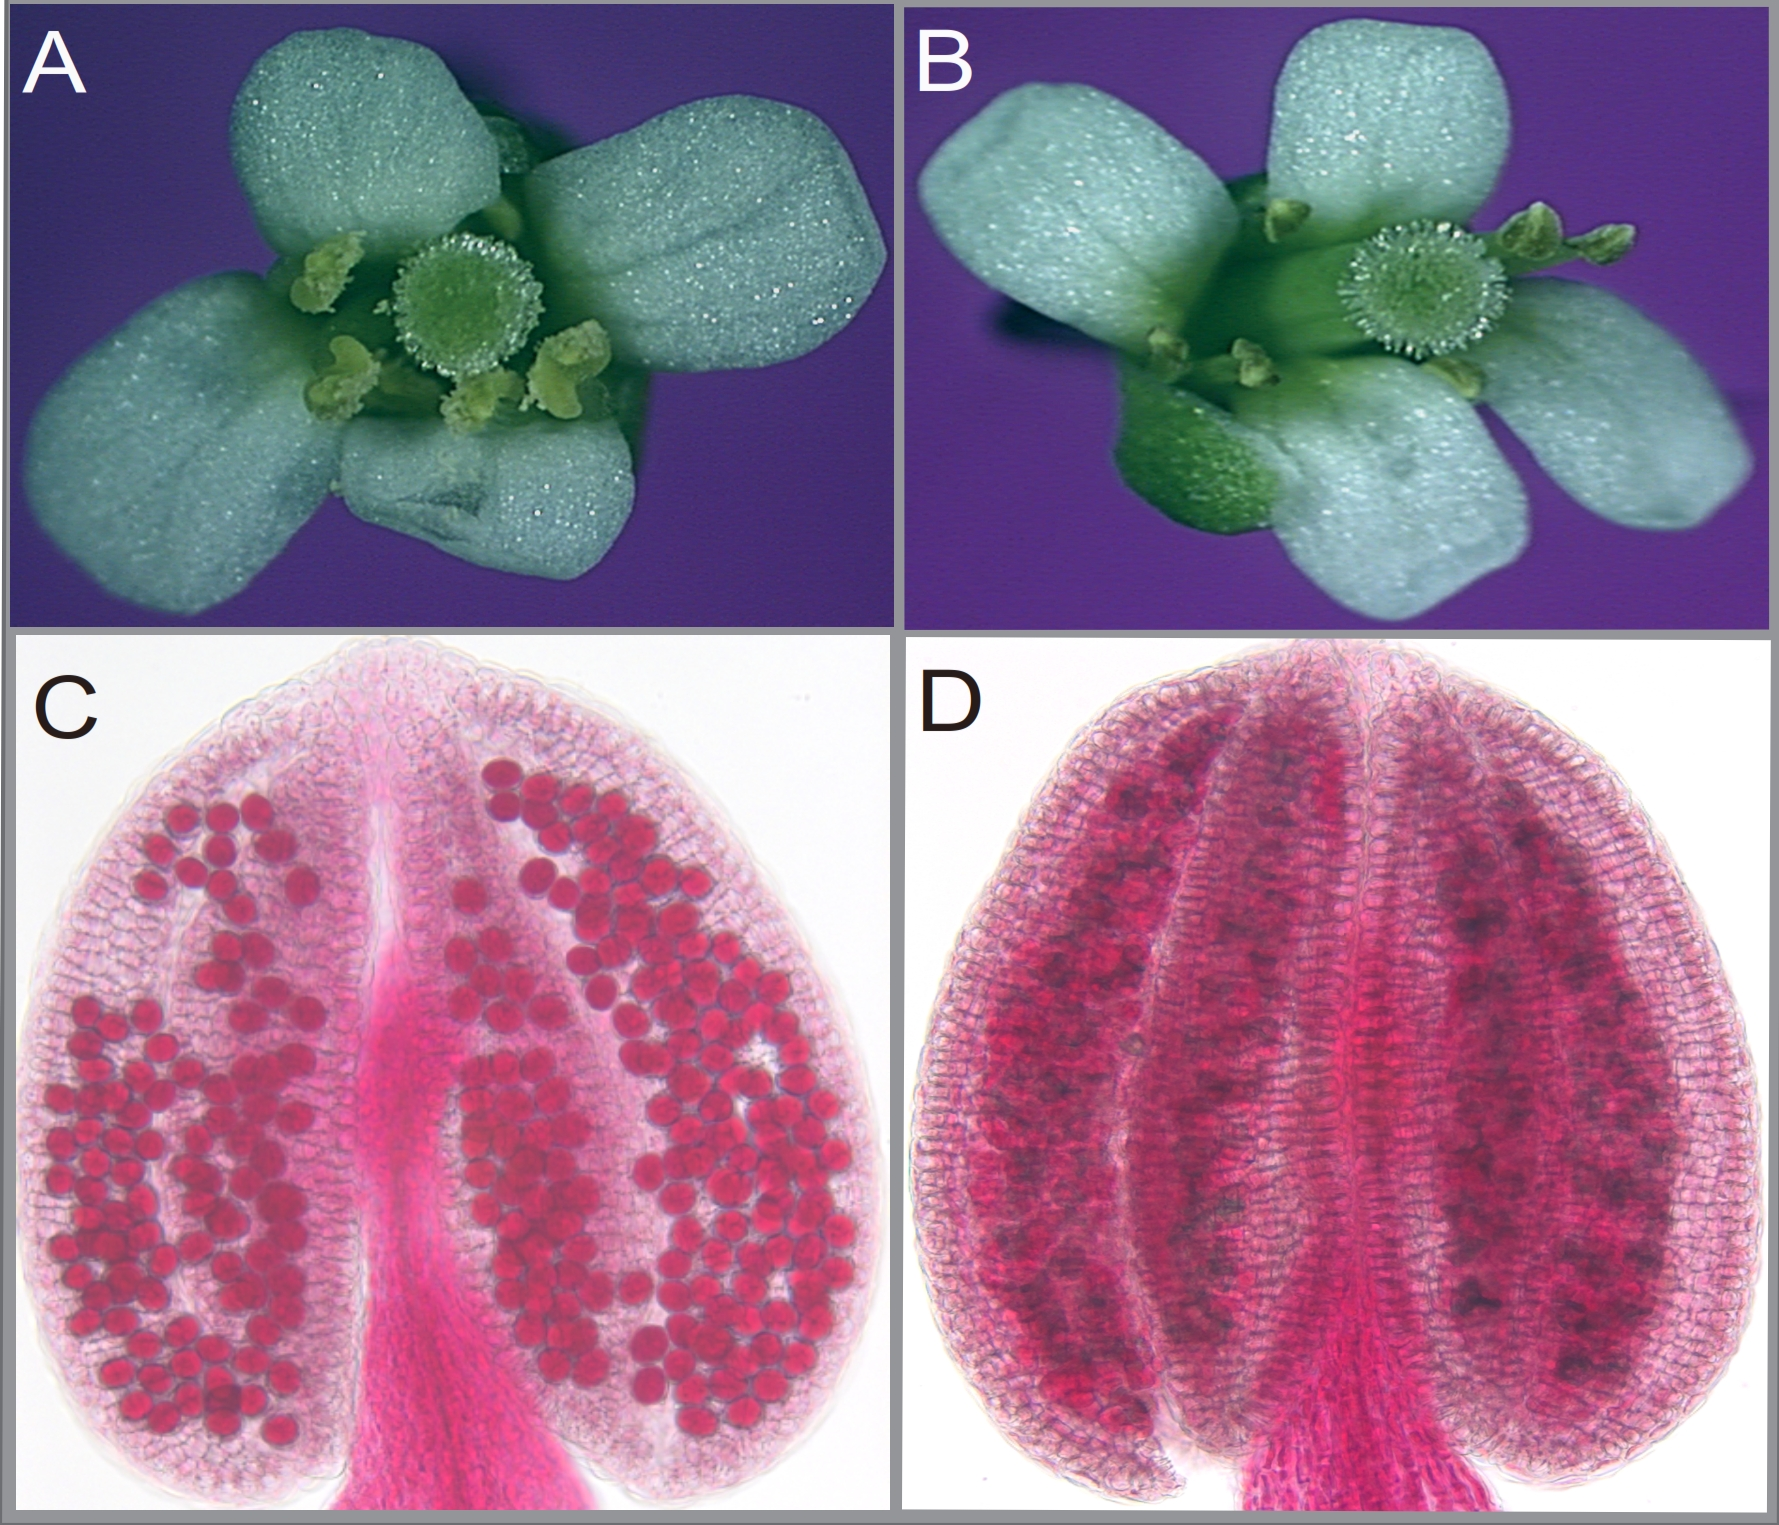 Phenotypes of Arabidopsis wild-type and the cdm1 mutant reproductive organs. (A), wild-type flower with plenty of pollen grains released from each anther. (B), cdm1 flower, showing similar floral structures but with no pollen grains observed on the anthers. (C), Alexander staining showing the viable pollen grains in a wild-type anther. (D), Dead pollen grains detected in blue in a cdm1 anther.